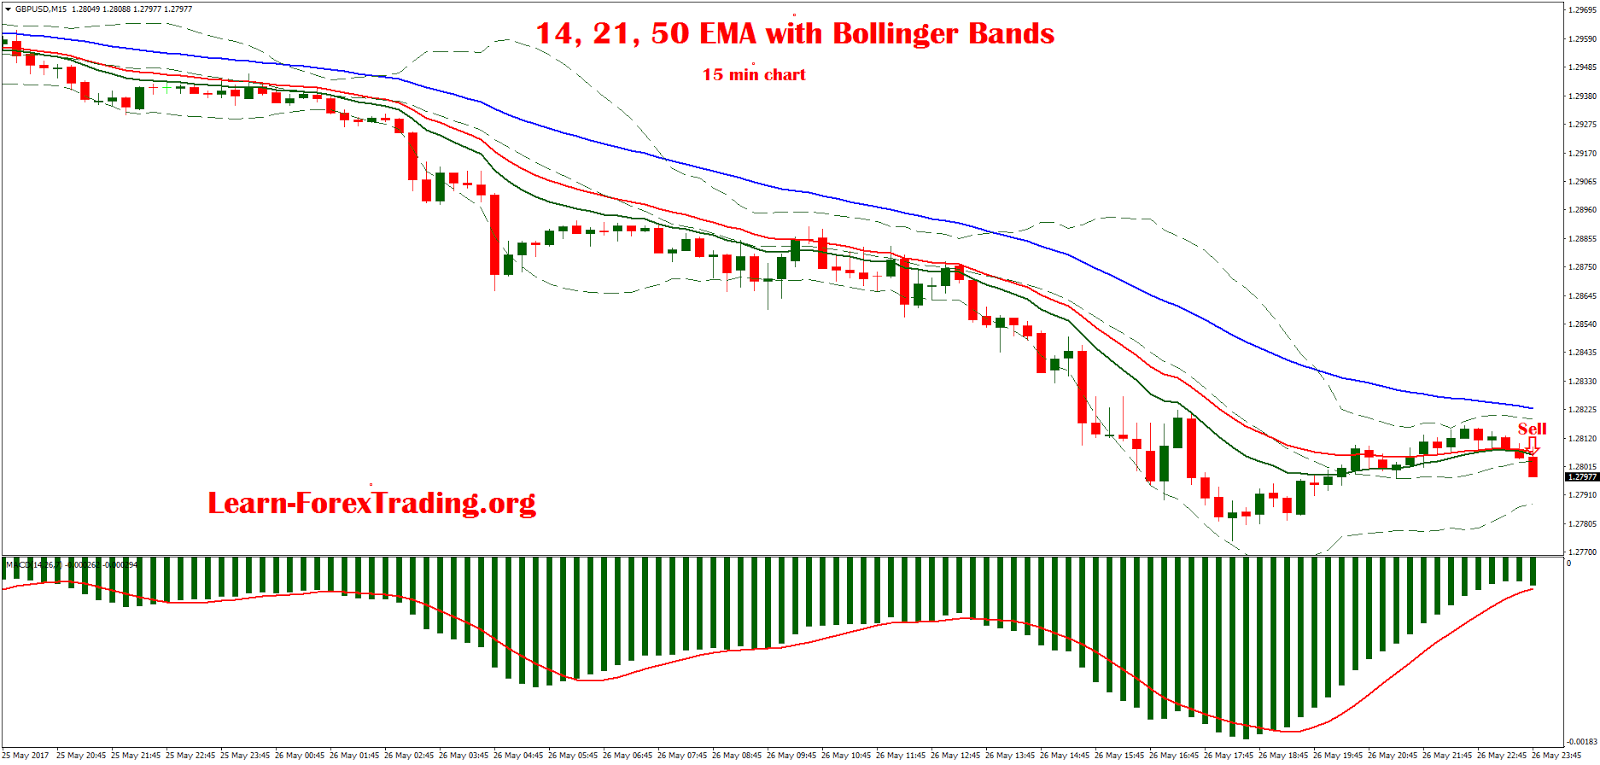 Bollinger bands ema definition